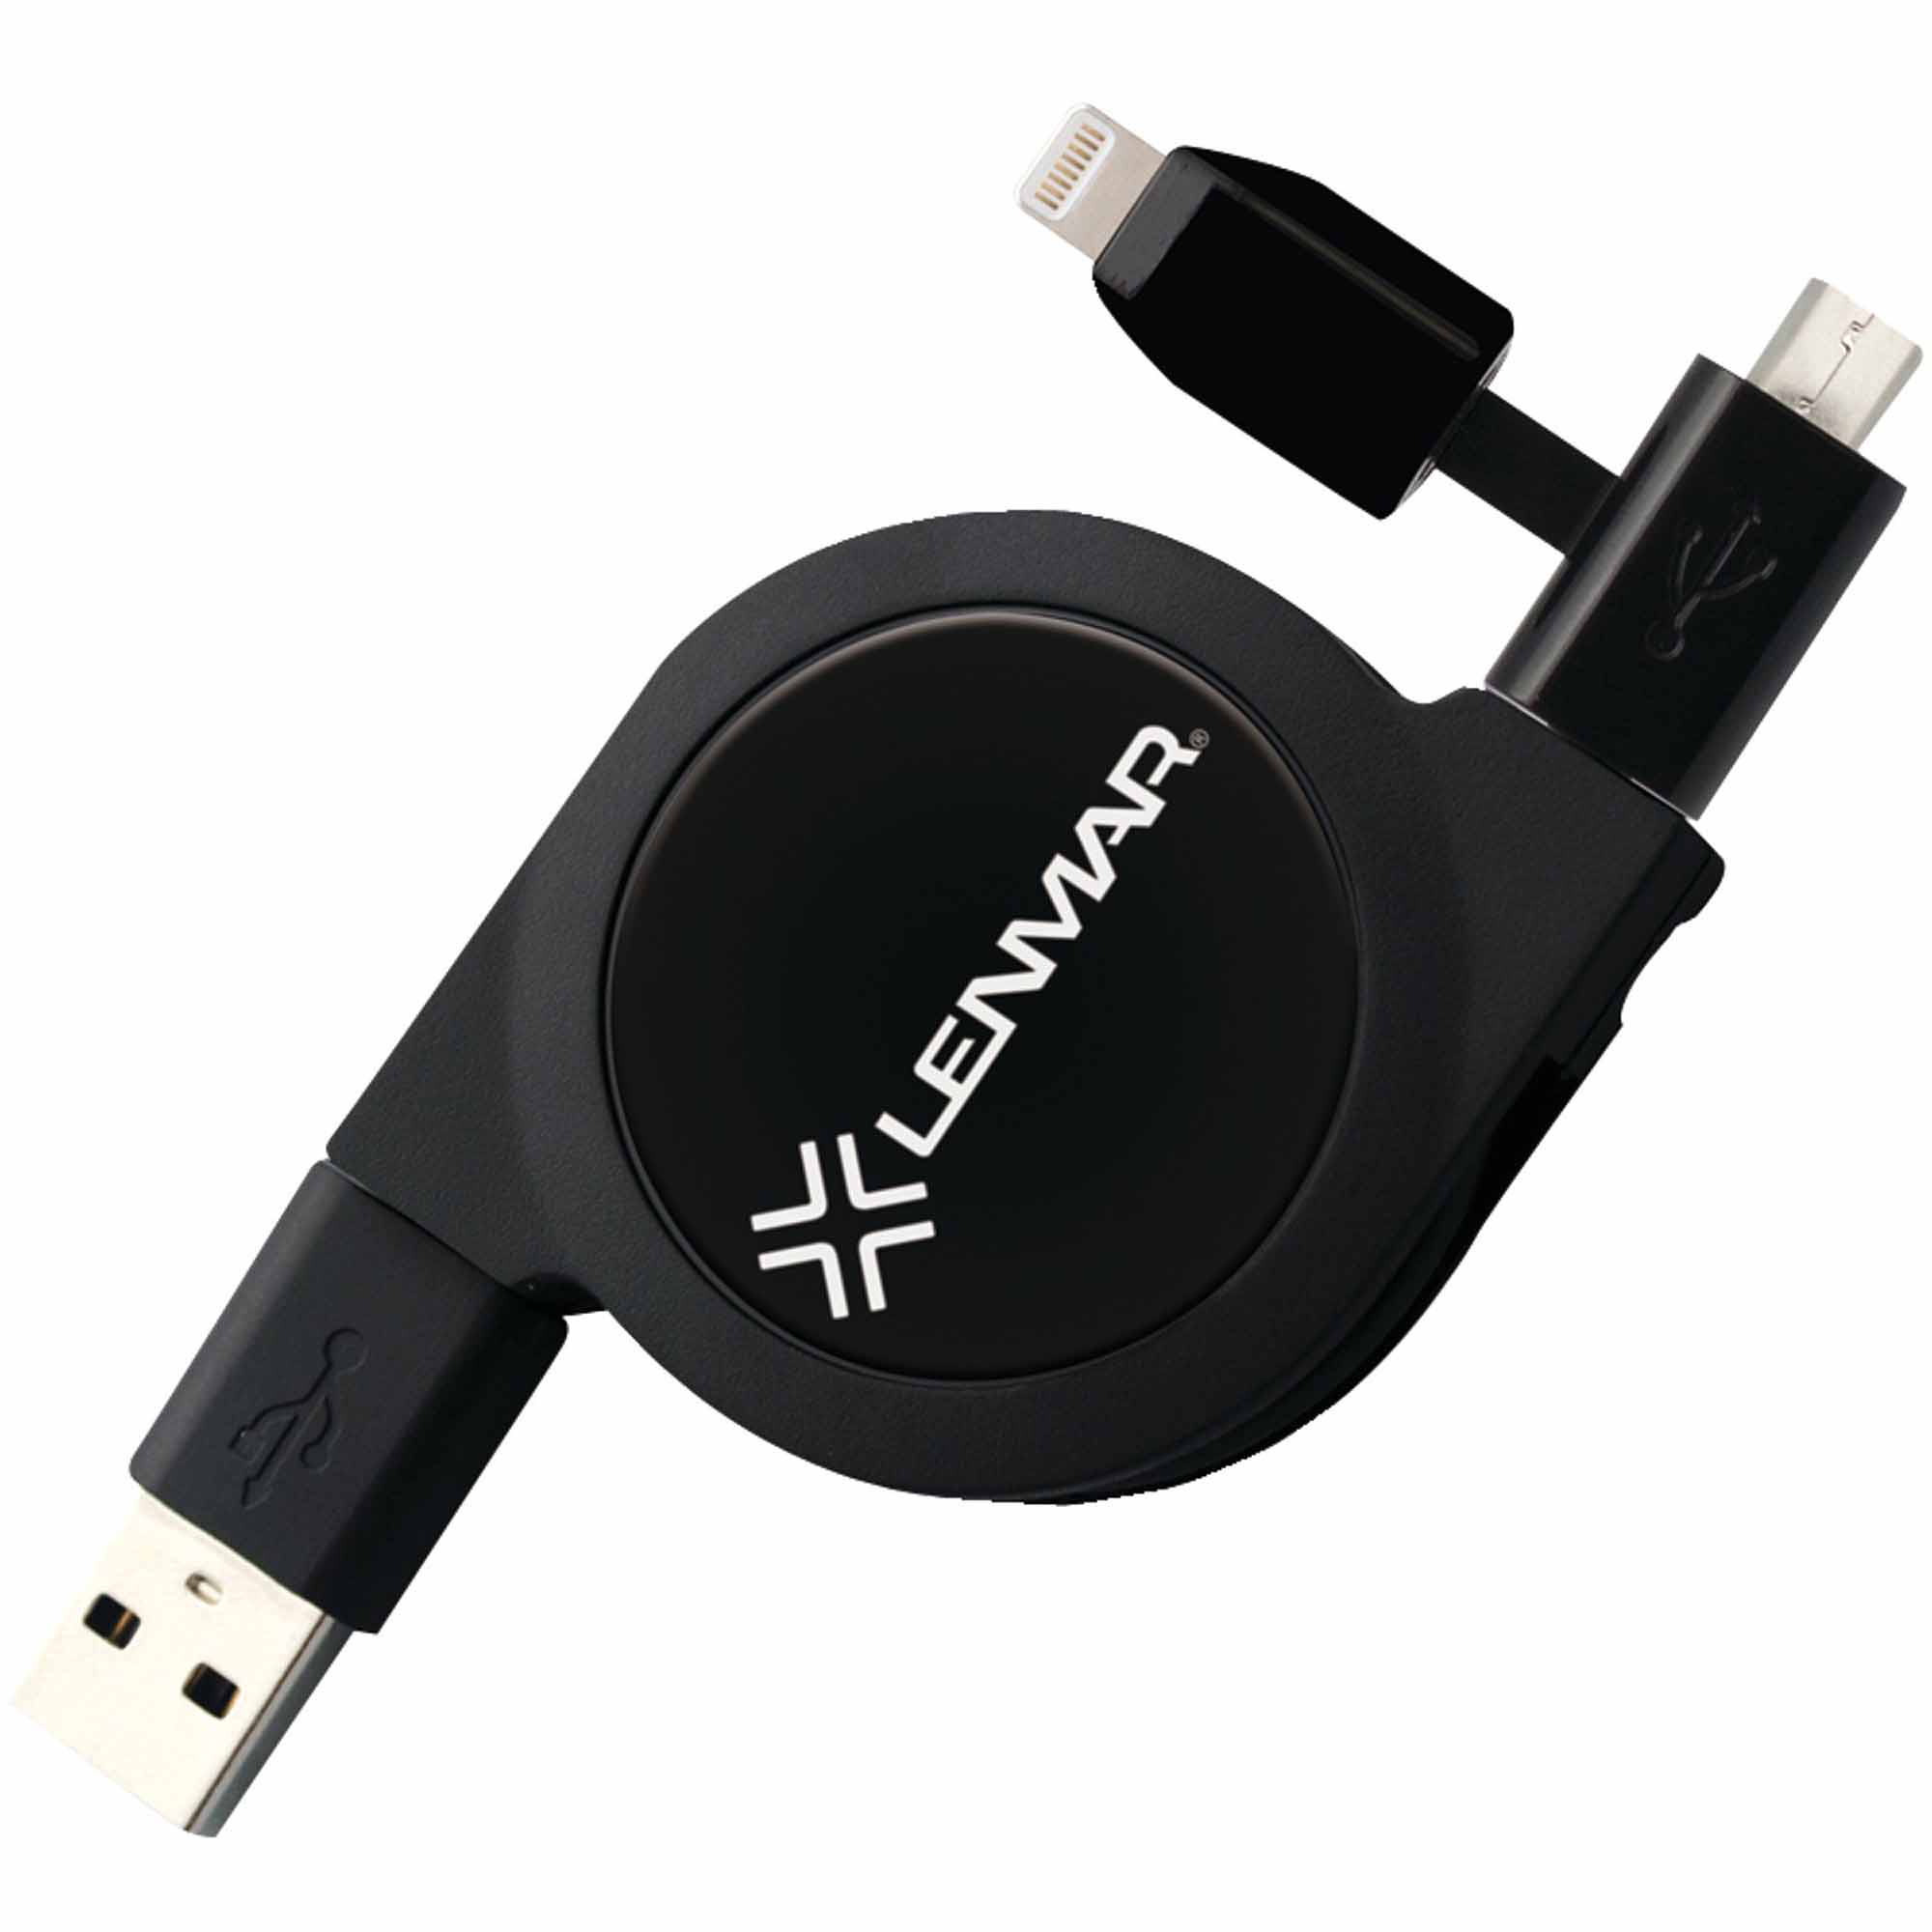 Lenmar CARTLMK 2-in-1 Retractable USB to microUSB/Lightning Cable, Black